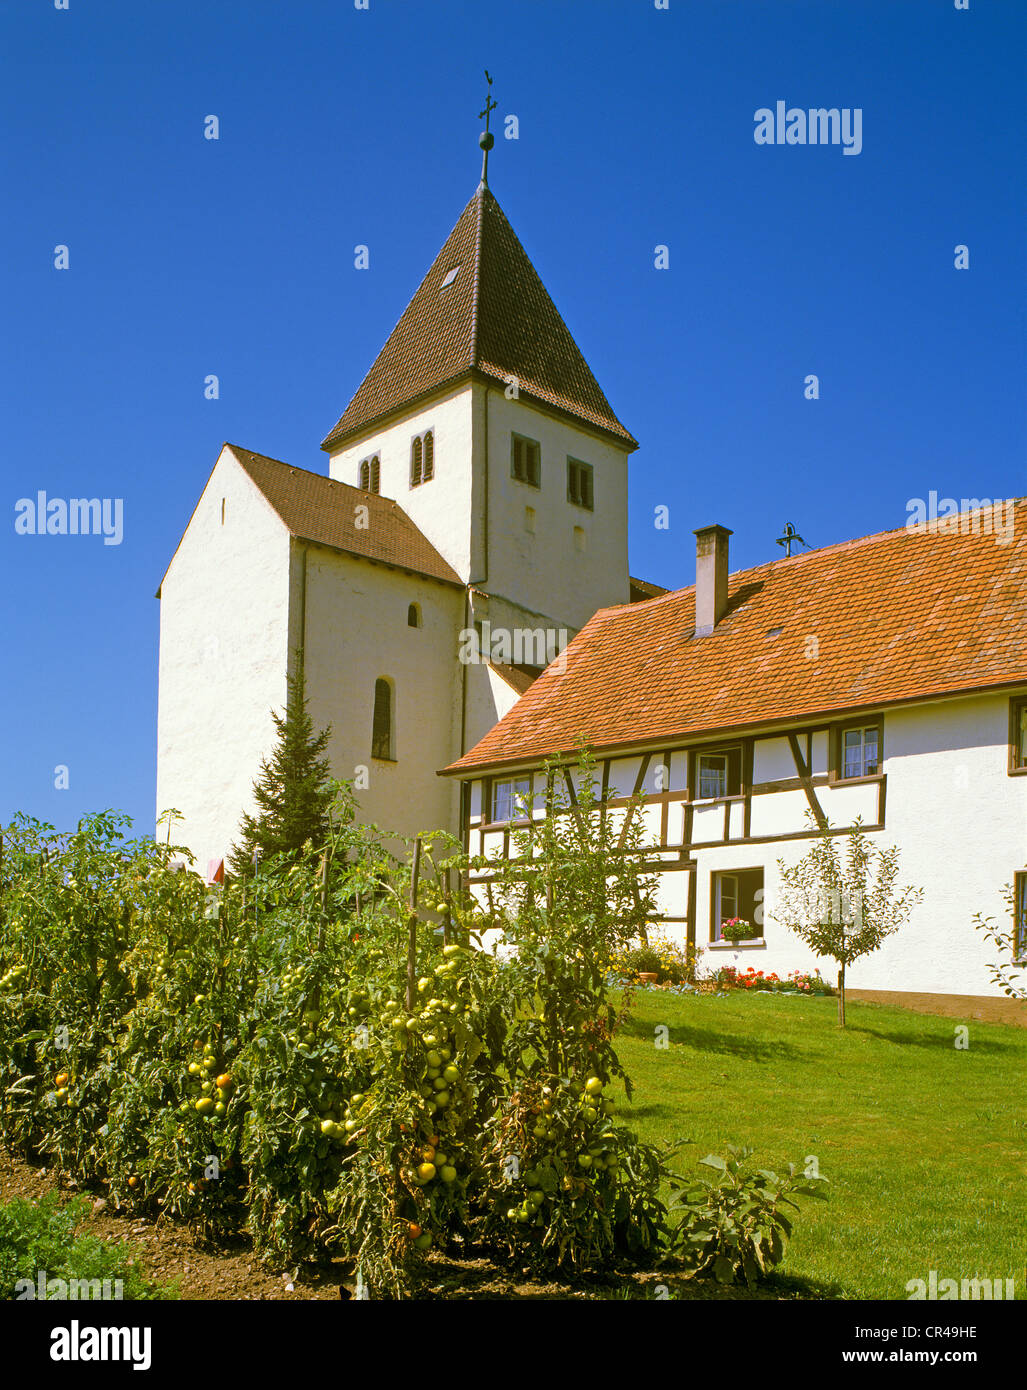 St George collegiate church, Oberzell, Lake Constance, Baden-Wuerttemberg, Germany, Europe - Stock Image